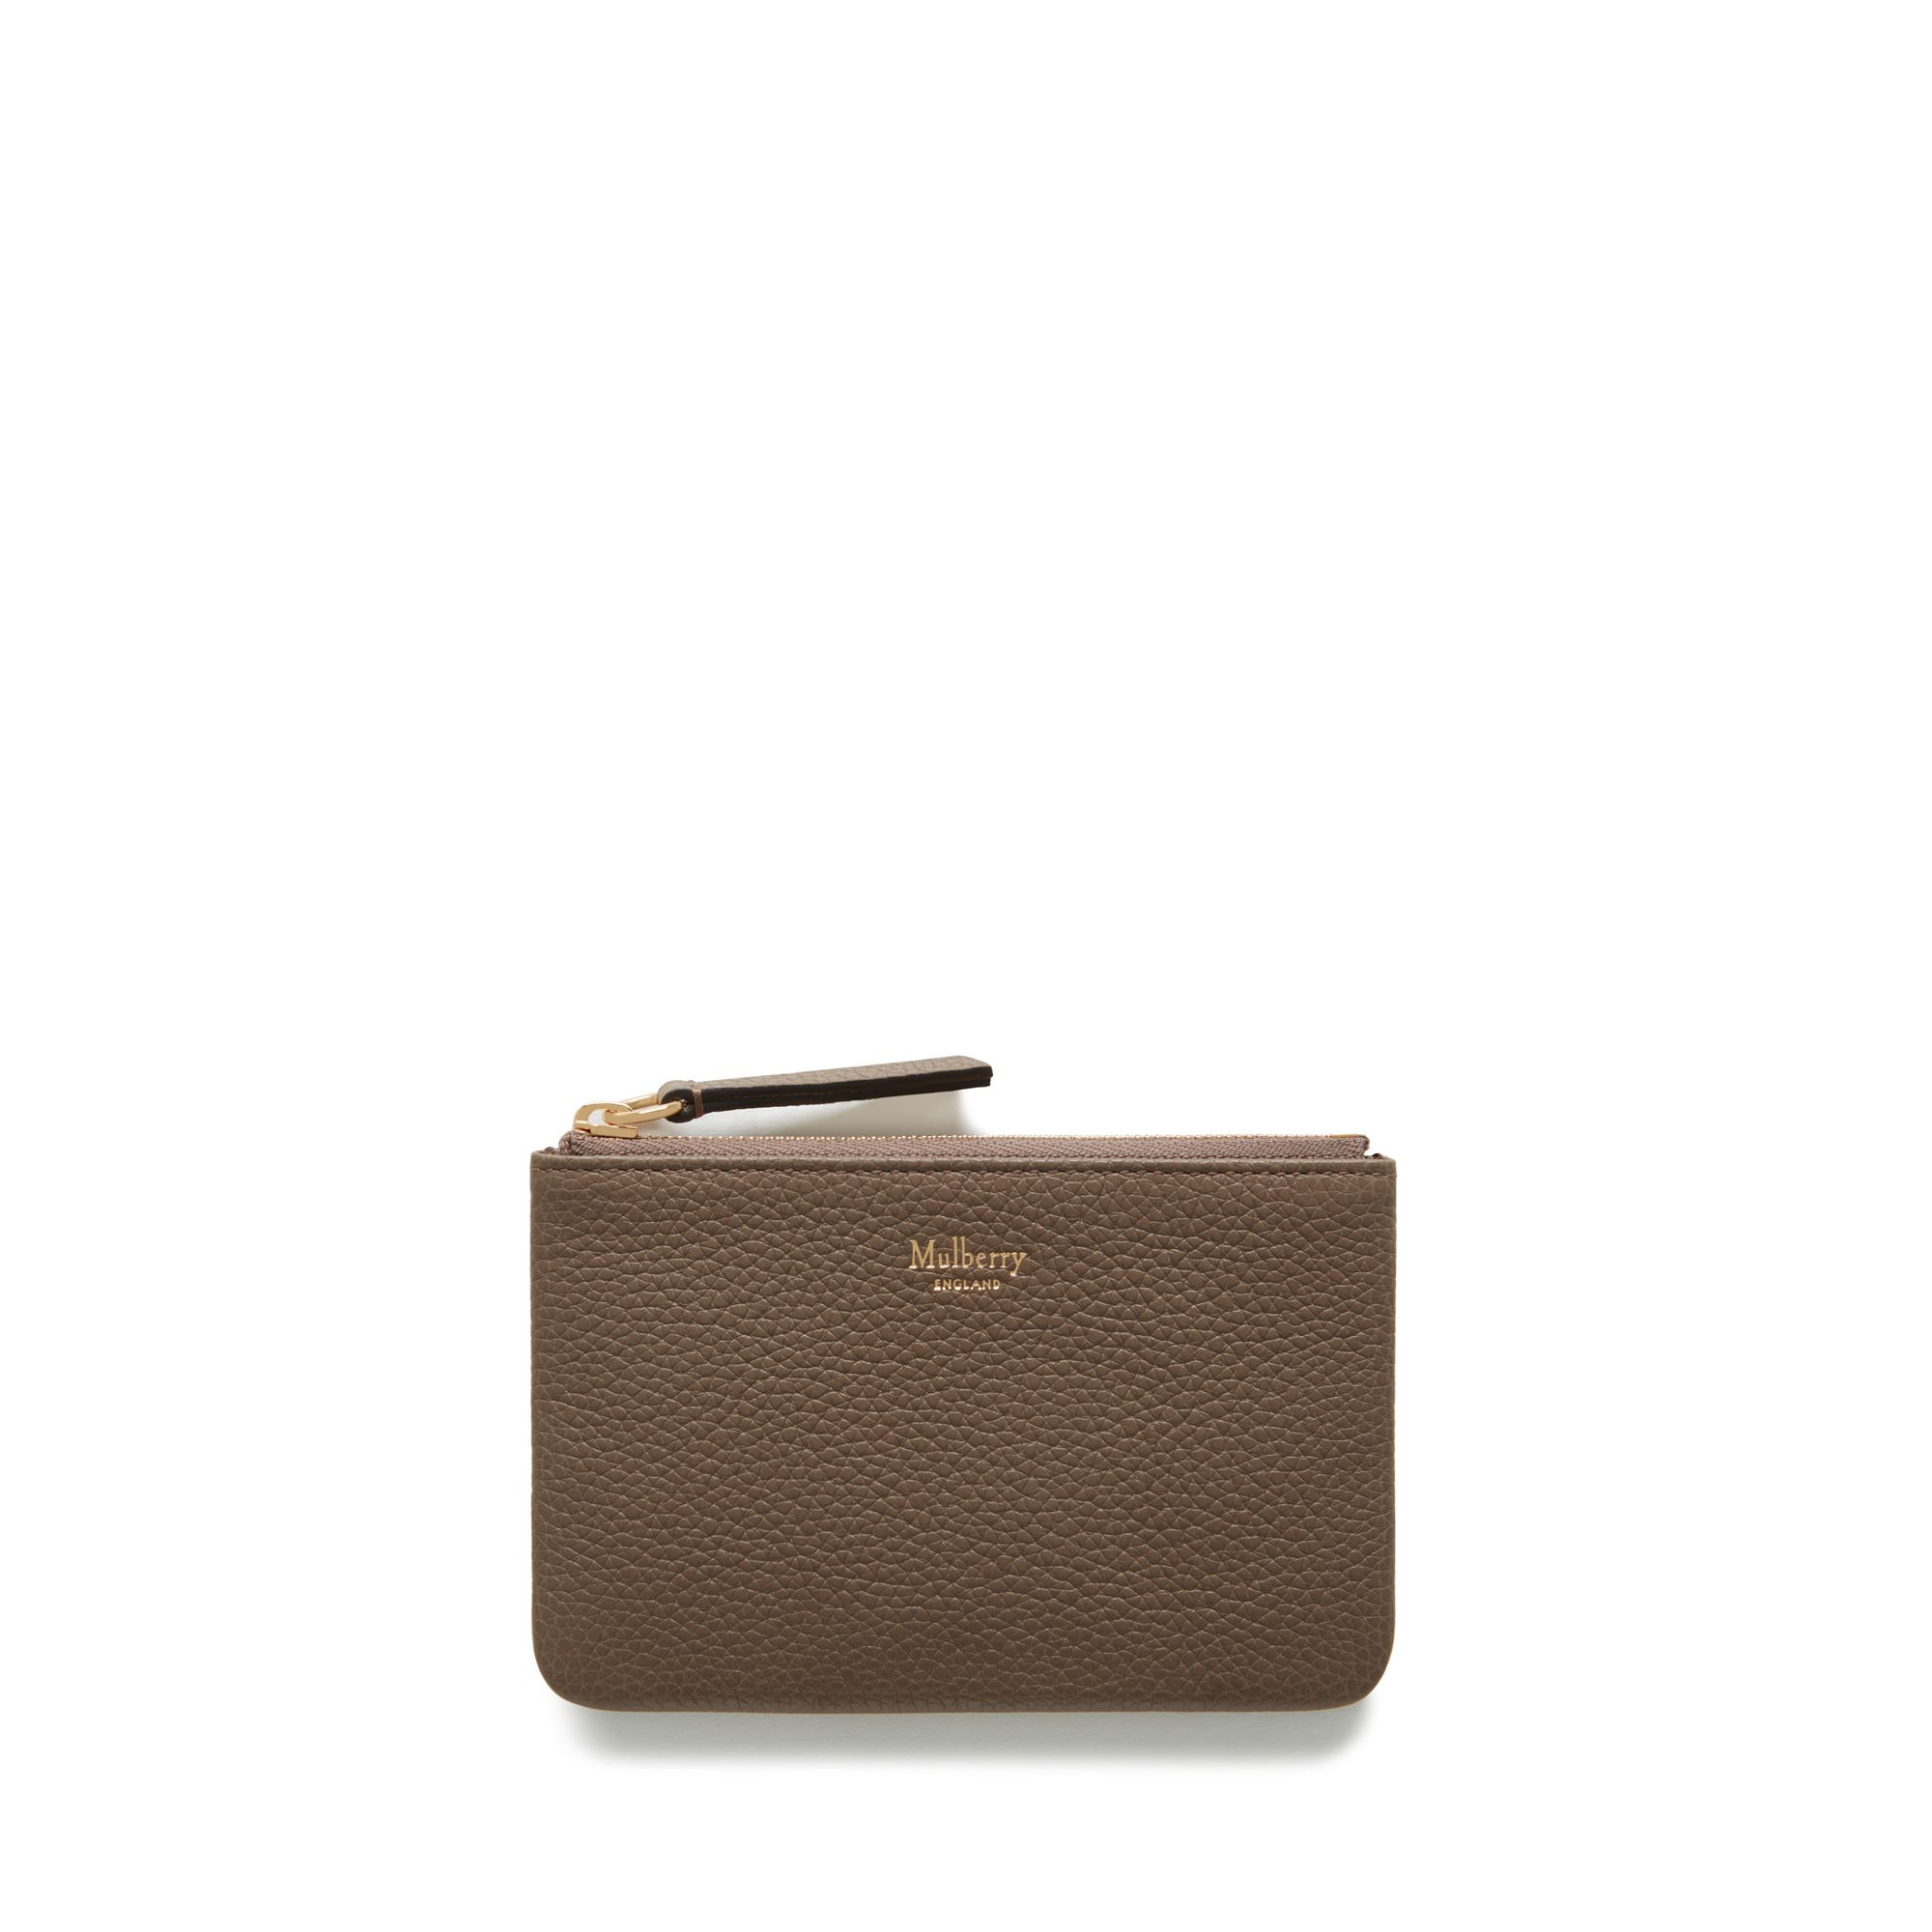 2a427edcaaf2 Small Leather Goods